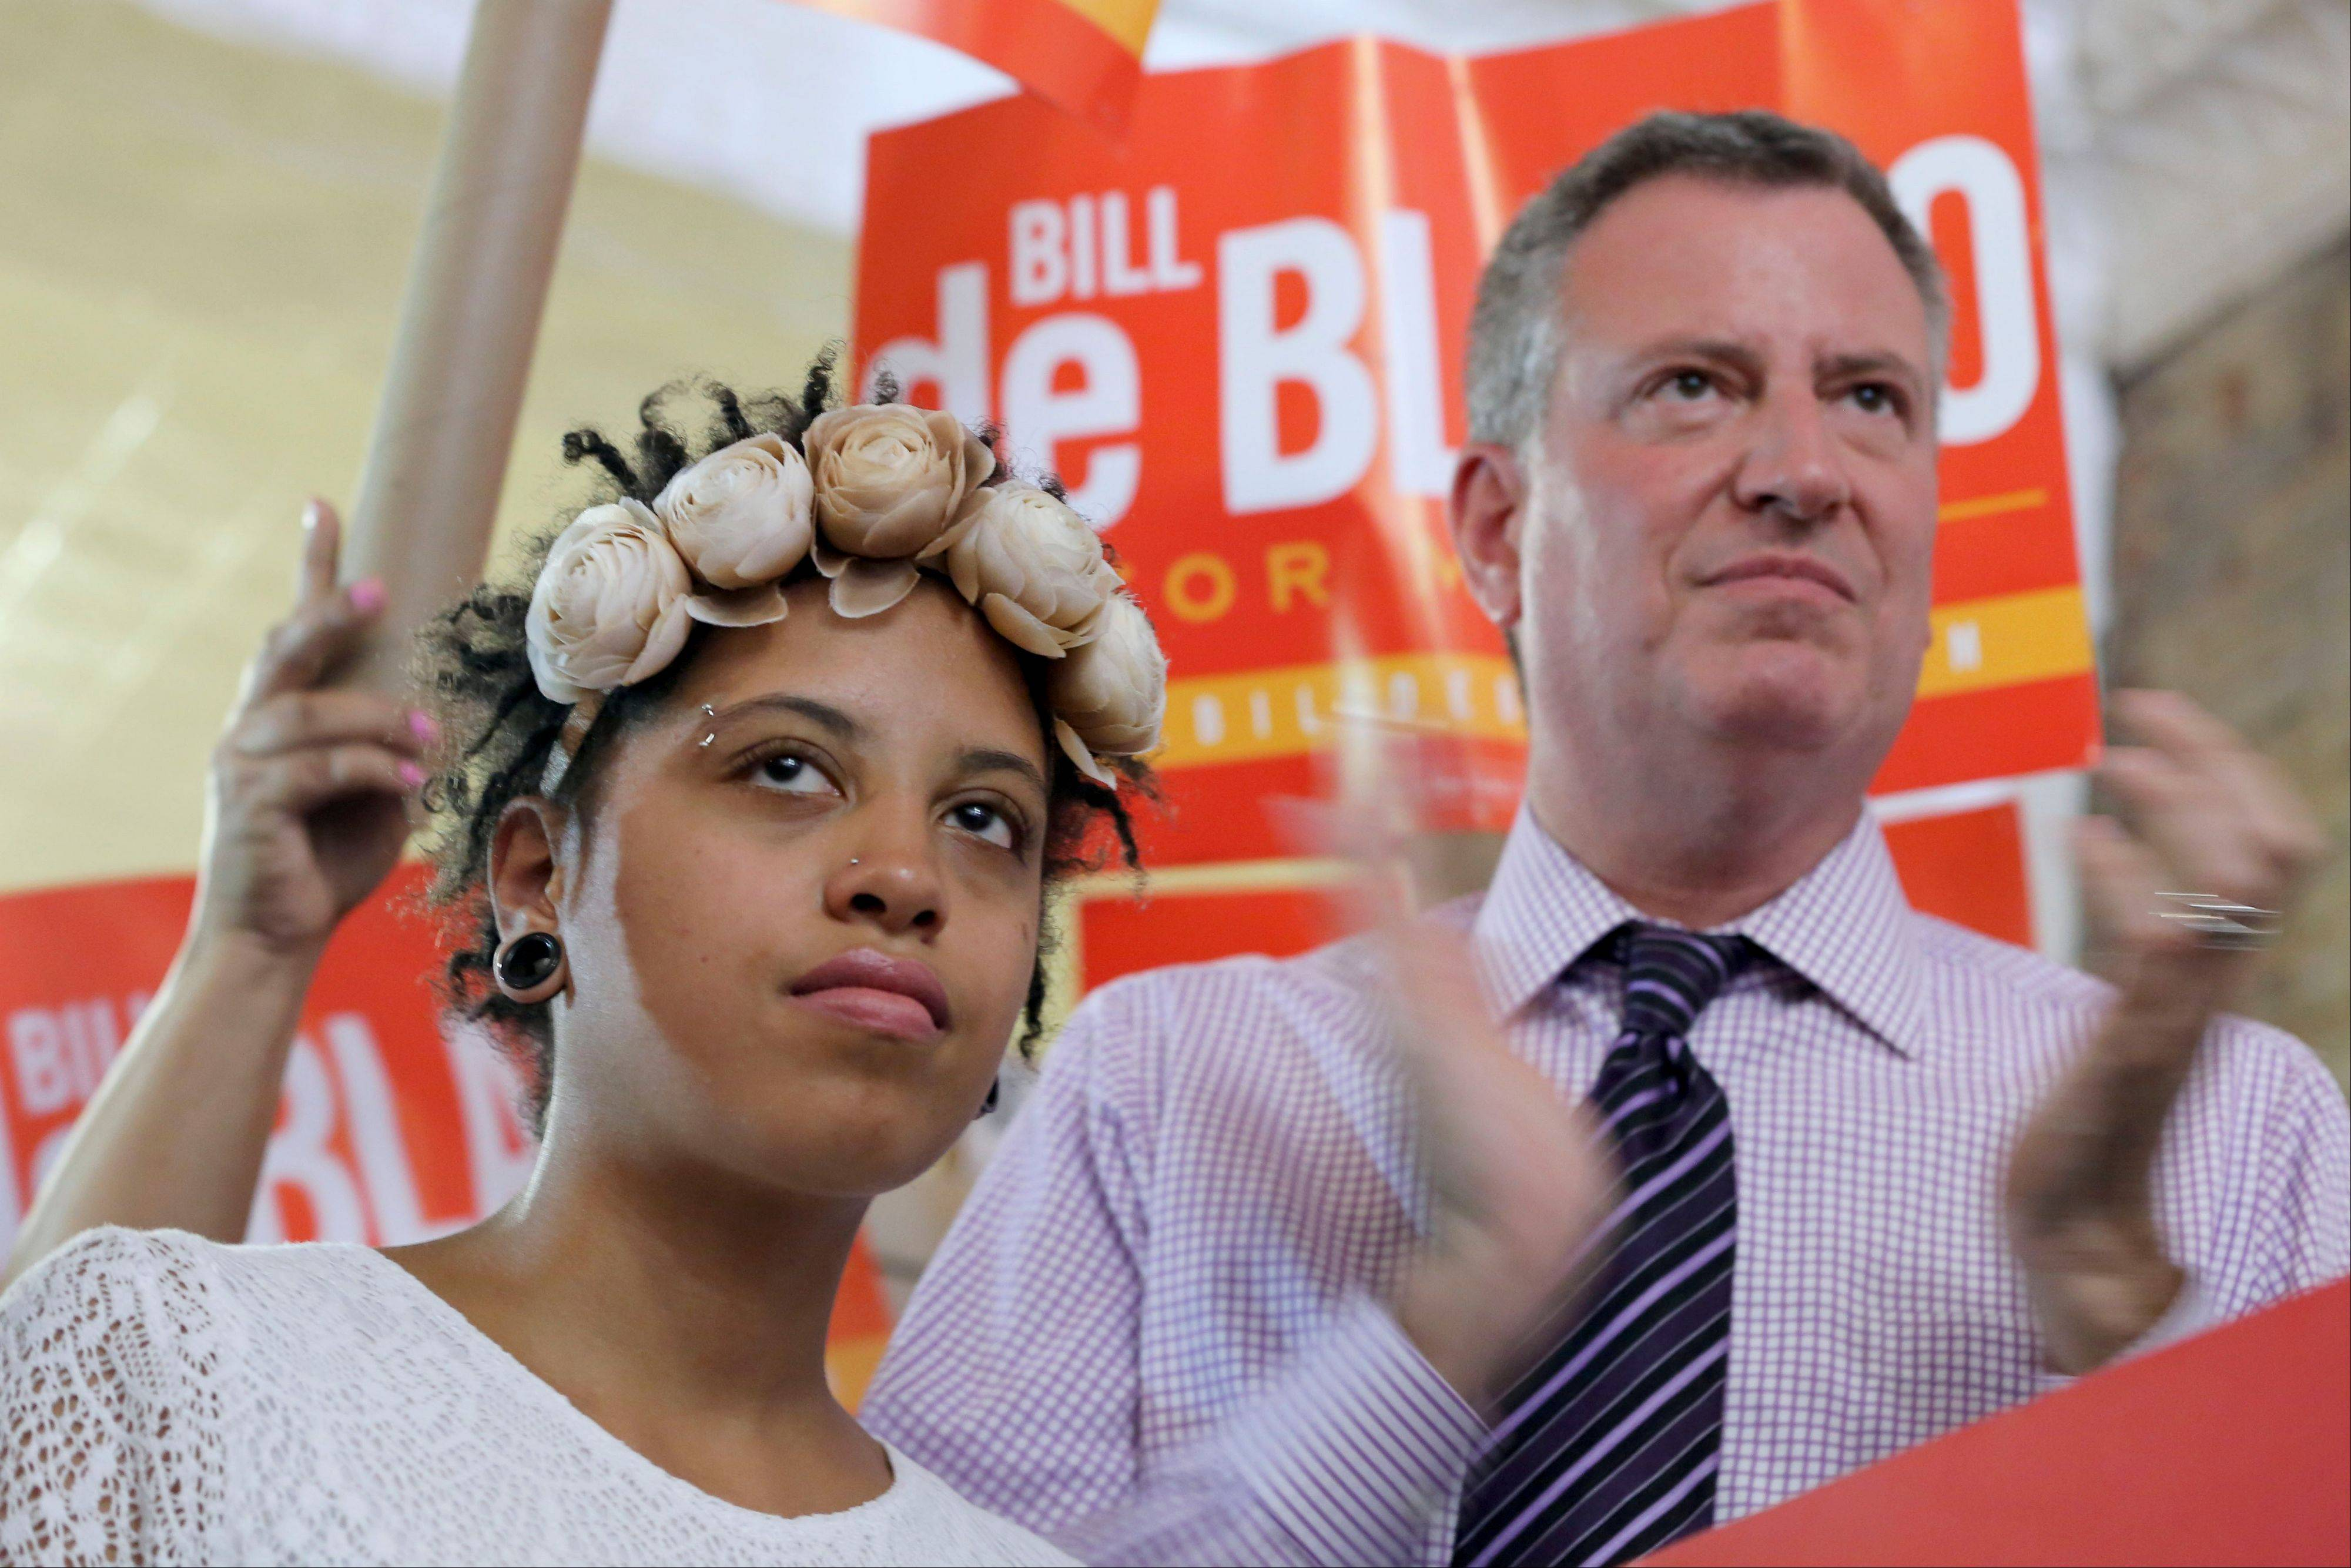 Democratic mayoral hopeful Bill de Blasio, right, is joined by his daughter Chiara, during a campaign rally Saturday in the Brooklyn borough of New York. The Democratic primary election is Tuesday.